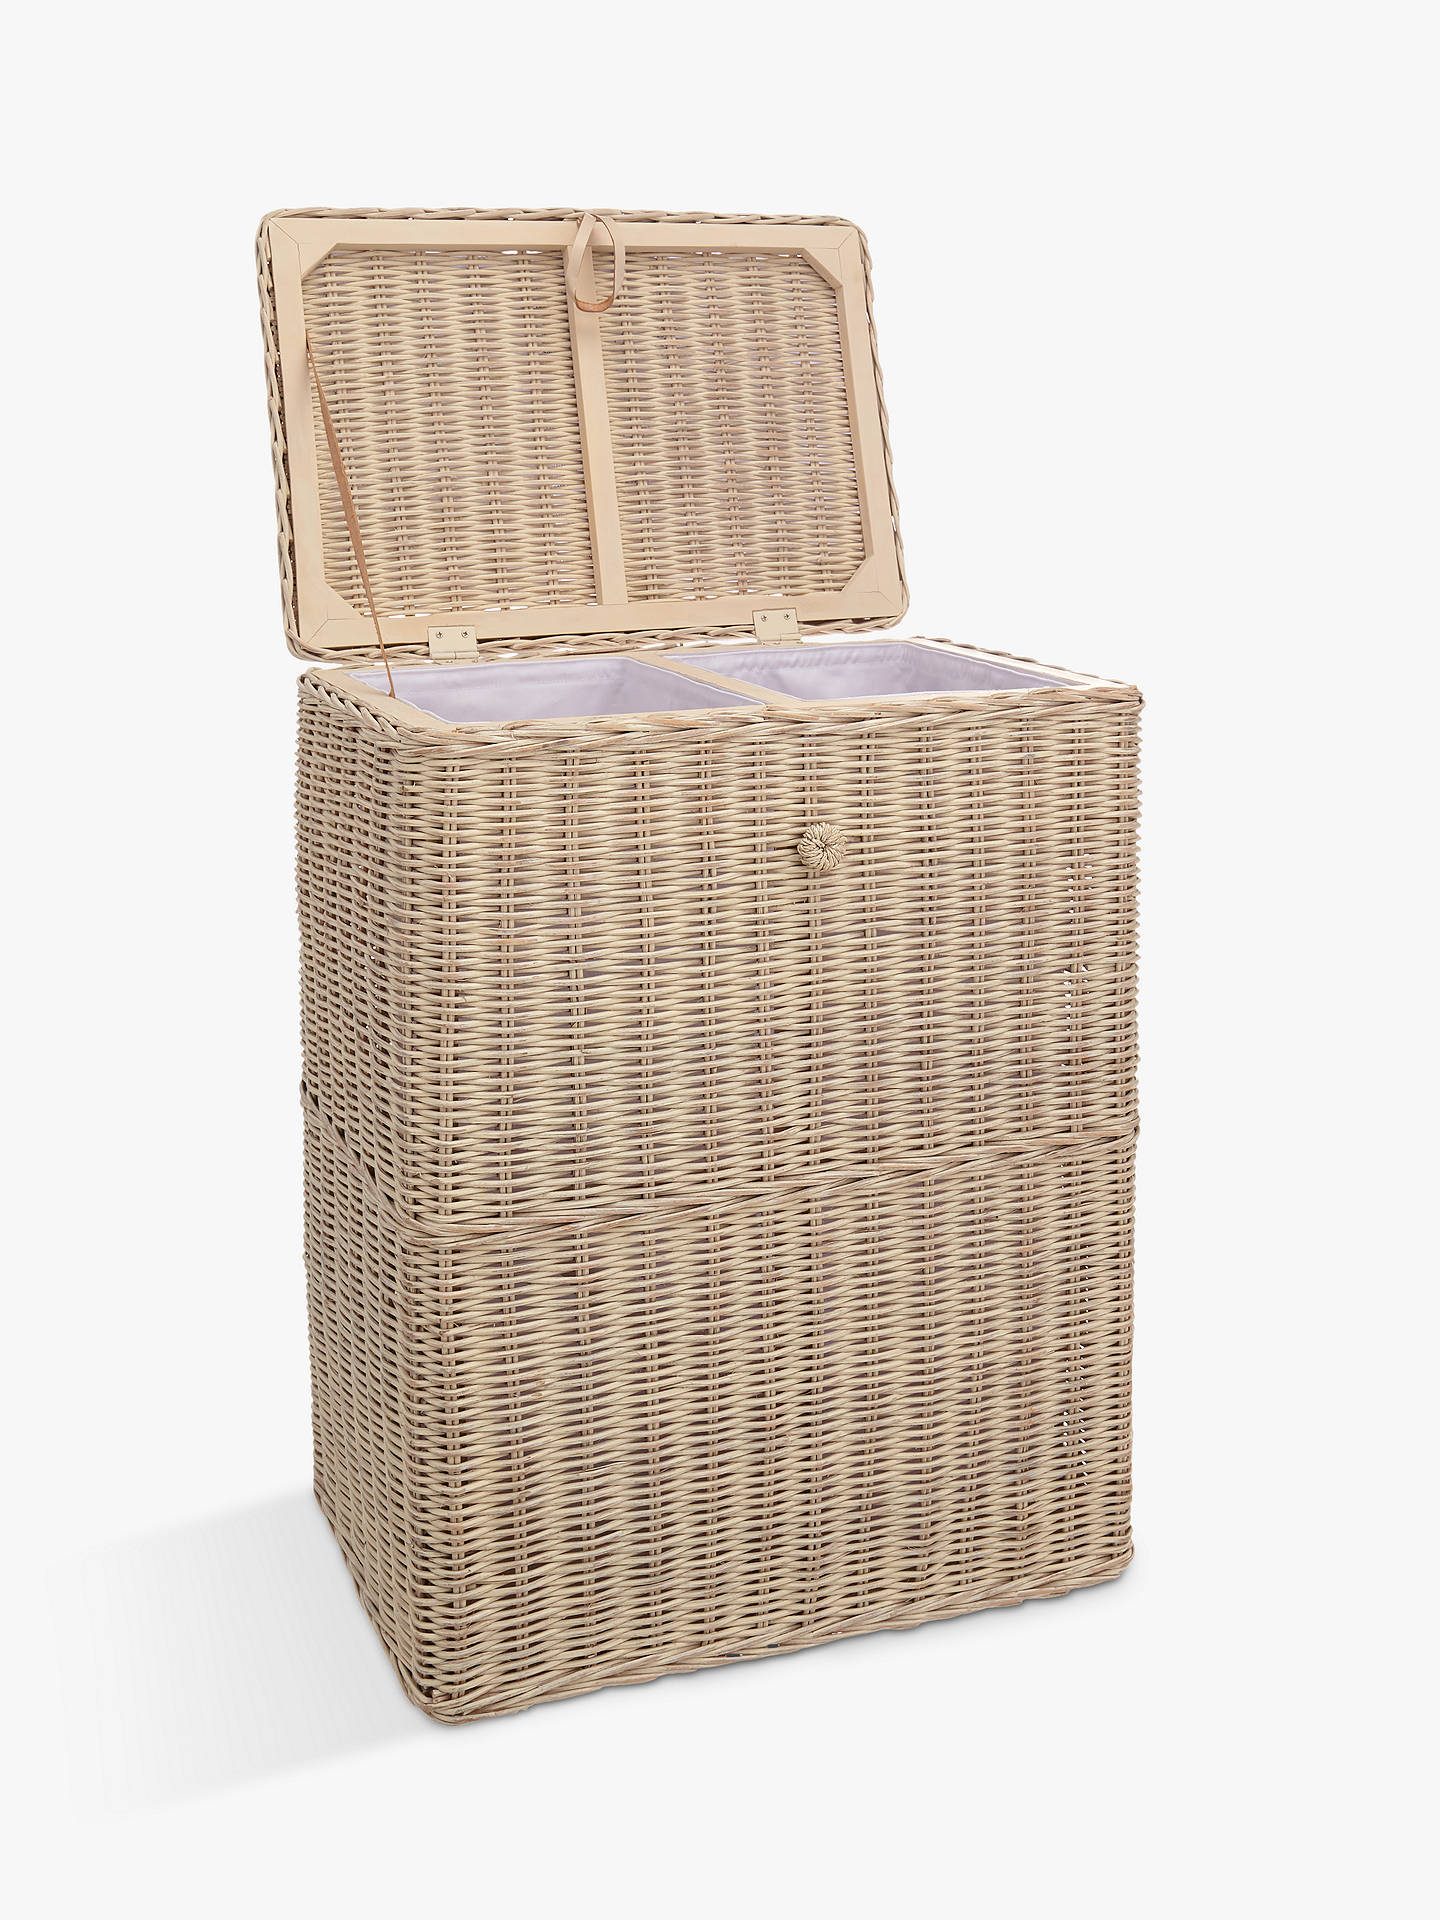 BuyCroft Collection Double Laundry Basket Online at johnlewis.com